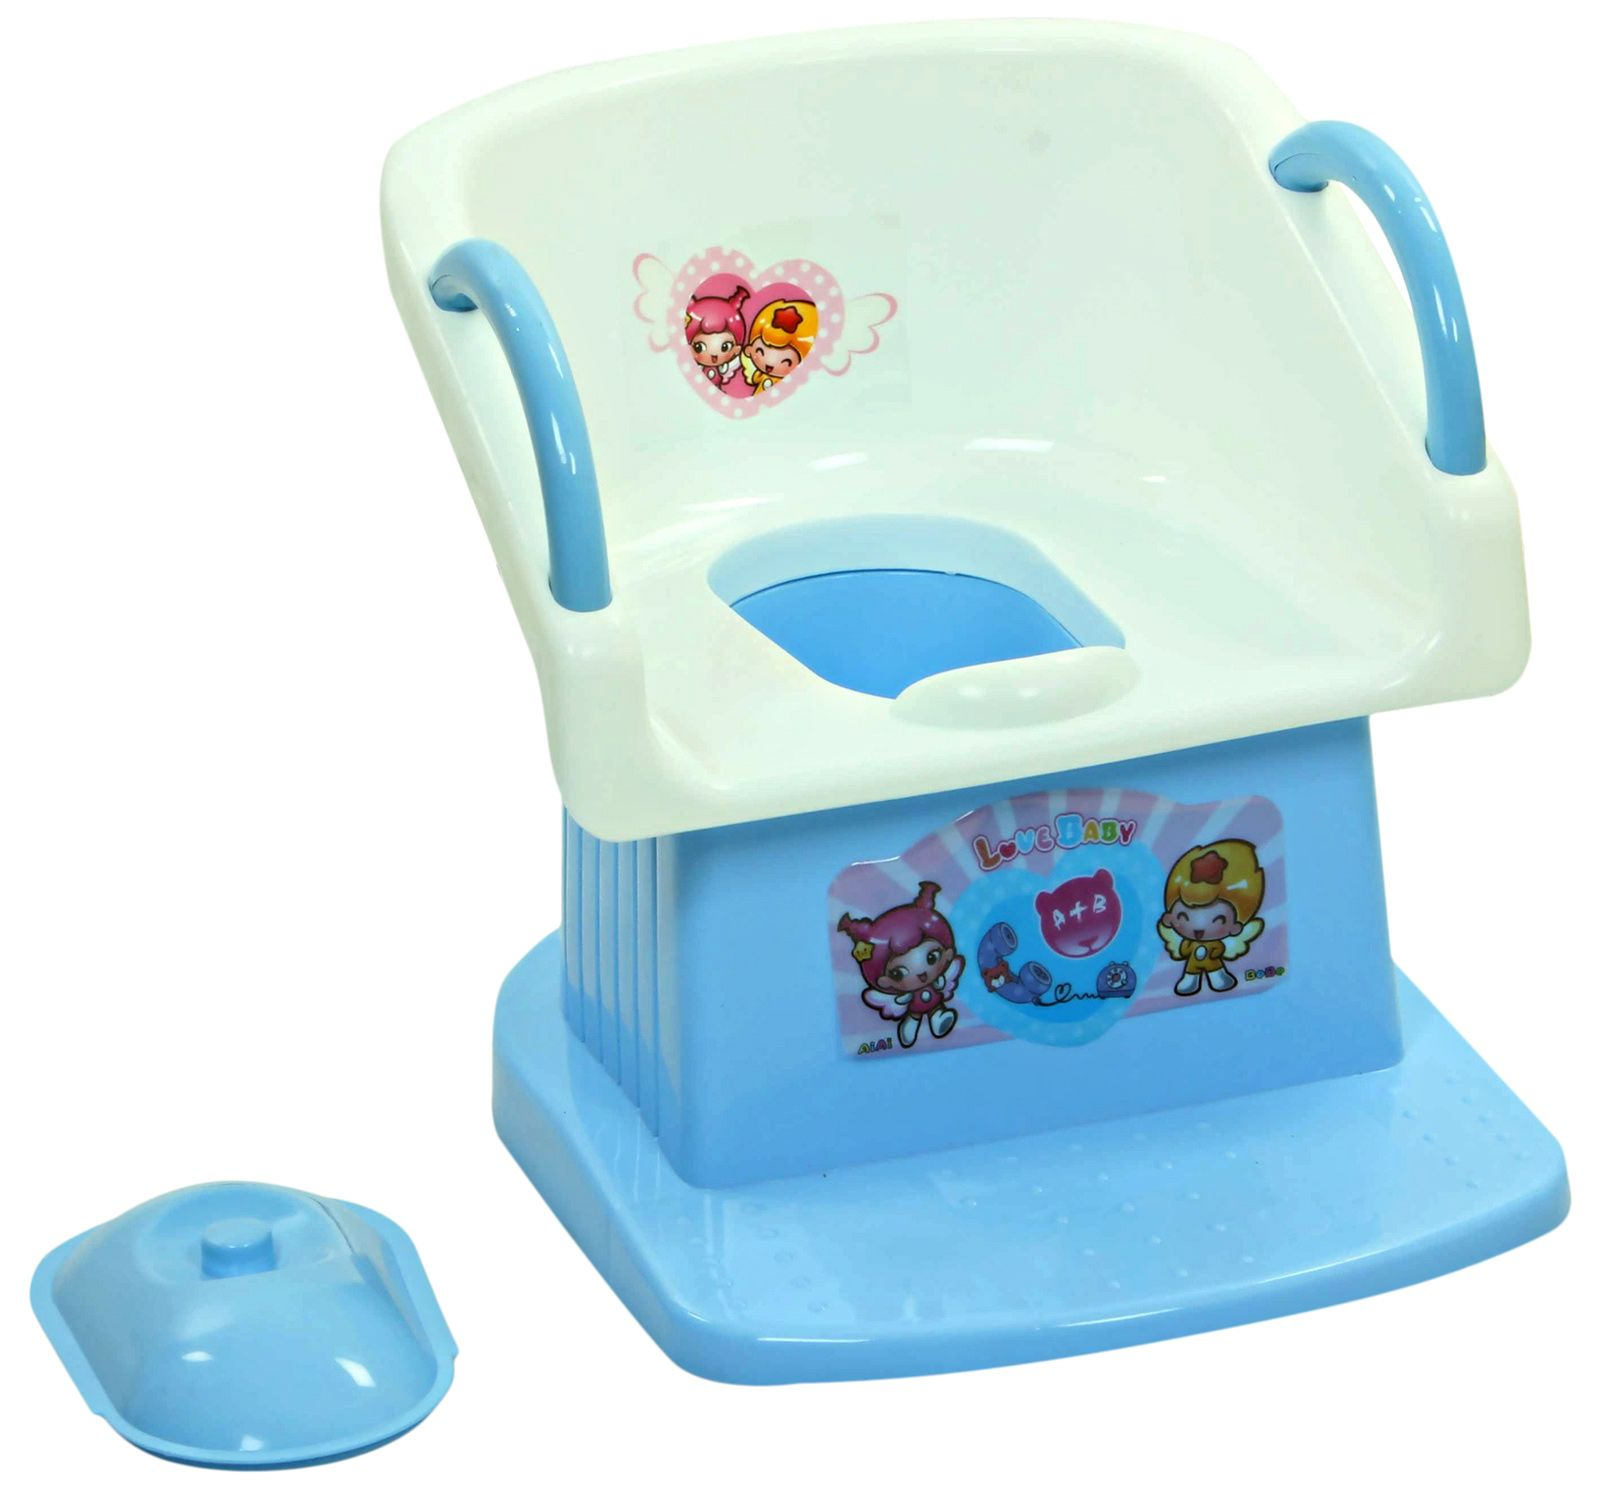 singing potty chair sleeper folding foam bed full size trained at night age disney musical seat